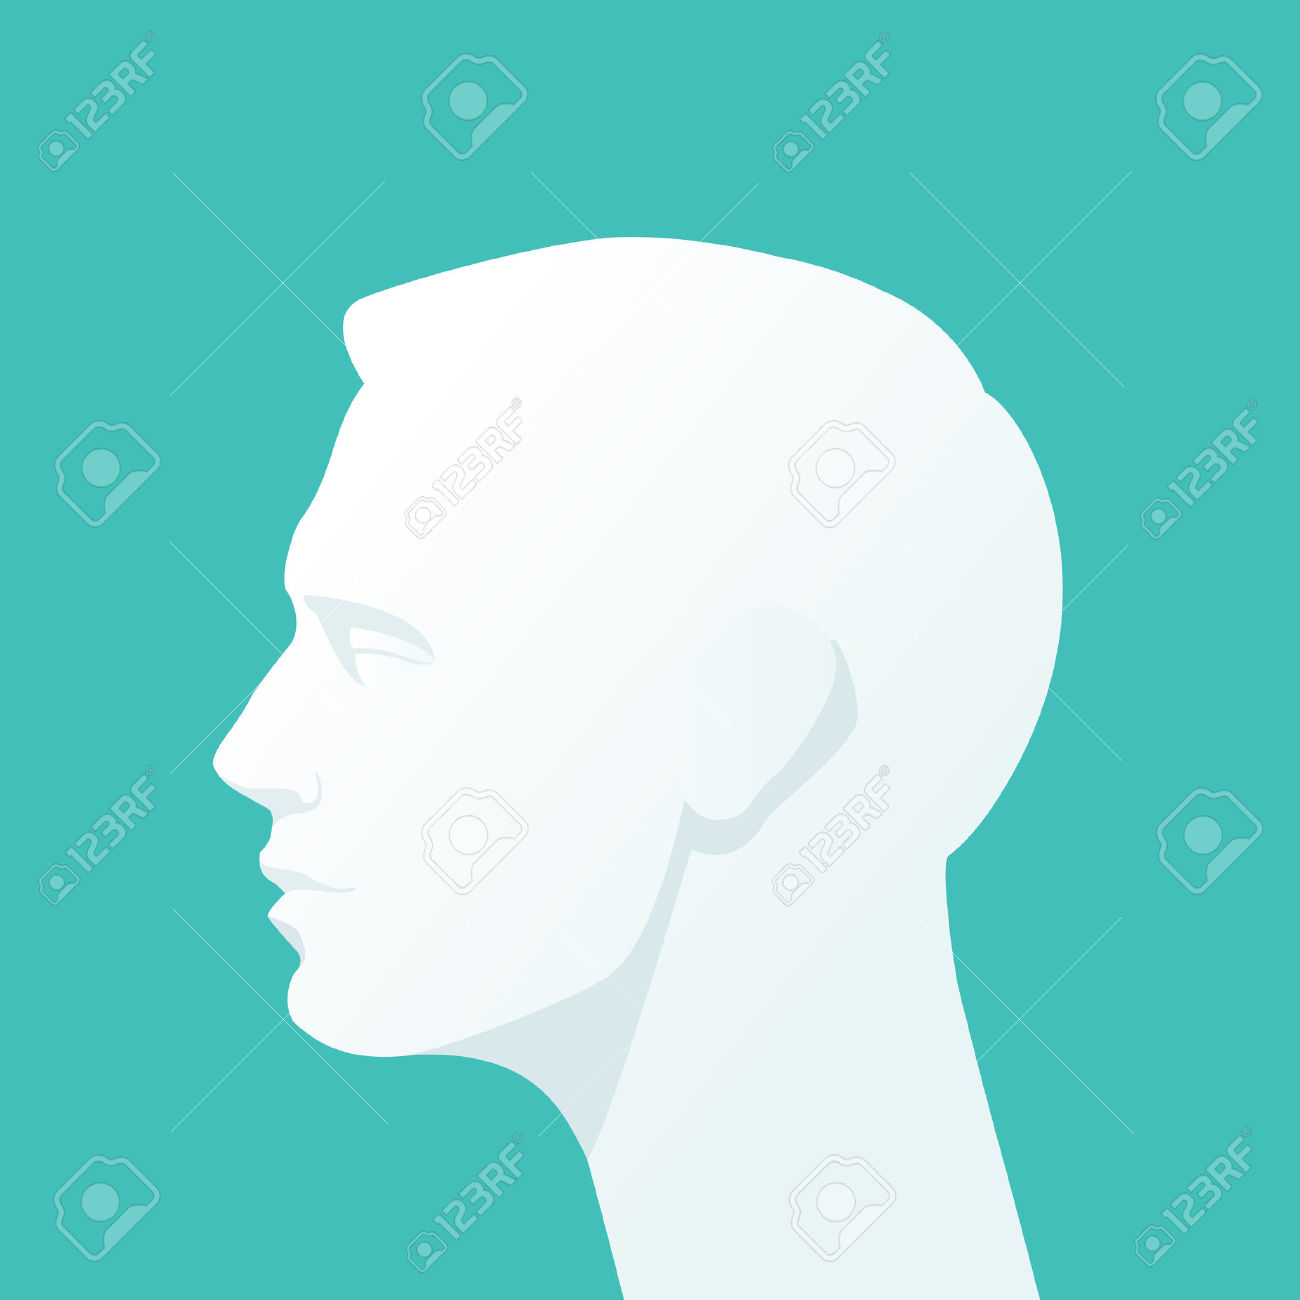 281,780 Human Head Stock Vector Illustration And Royalty Free.